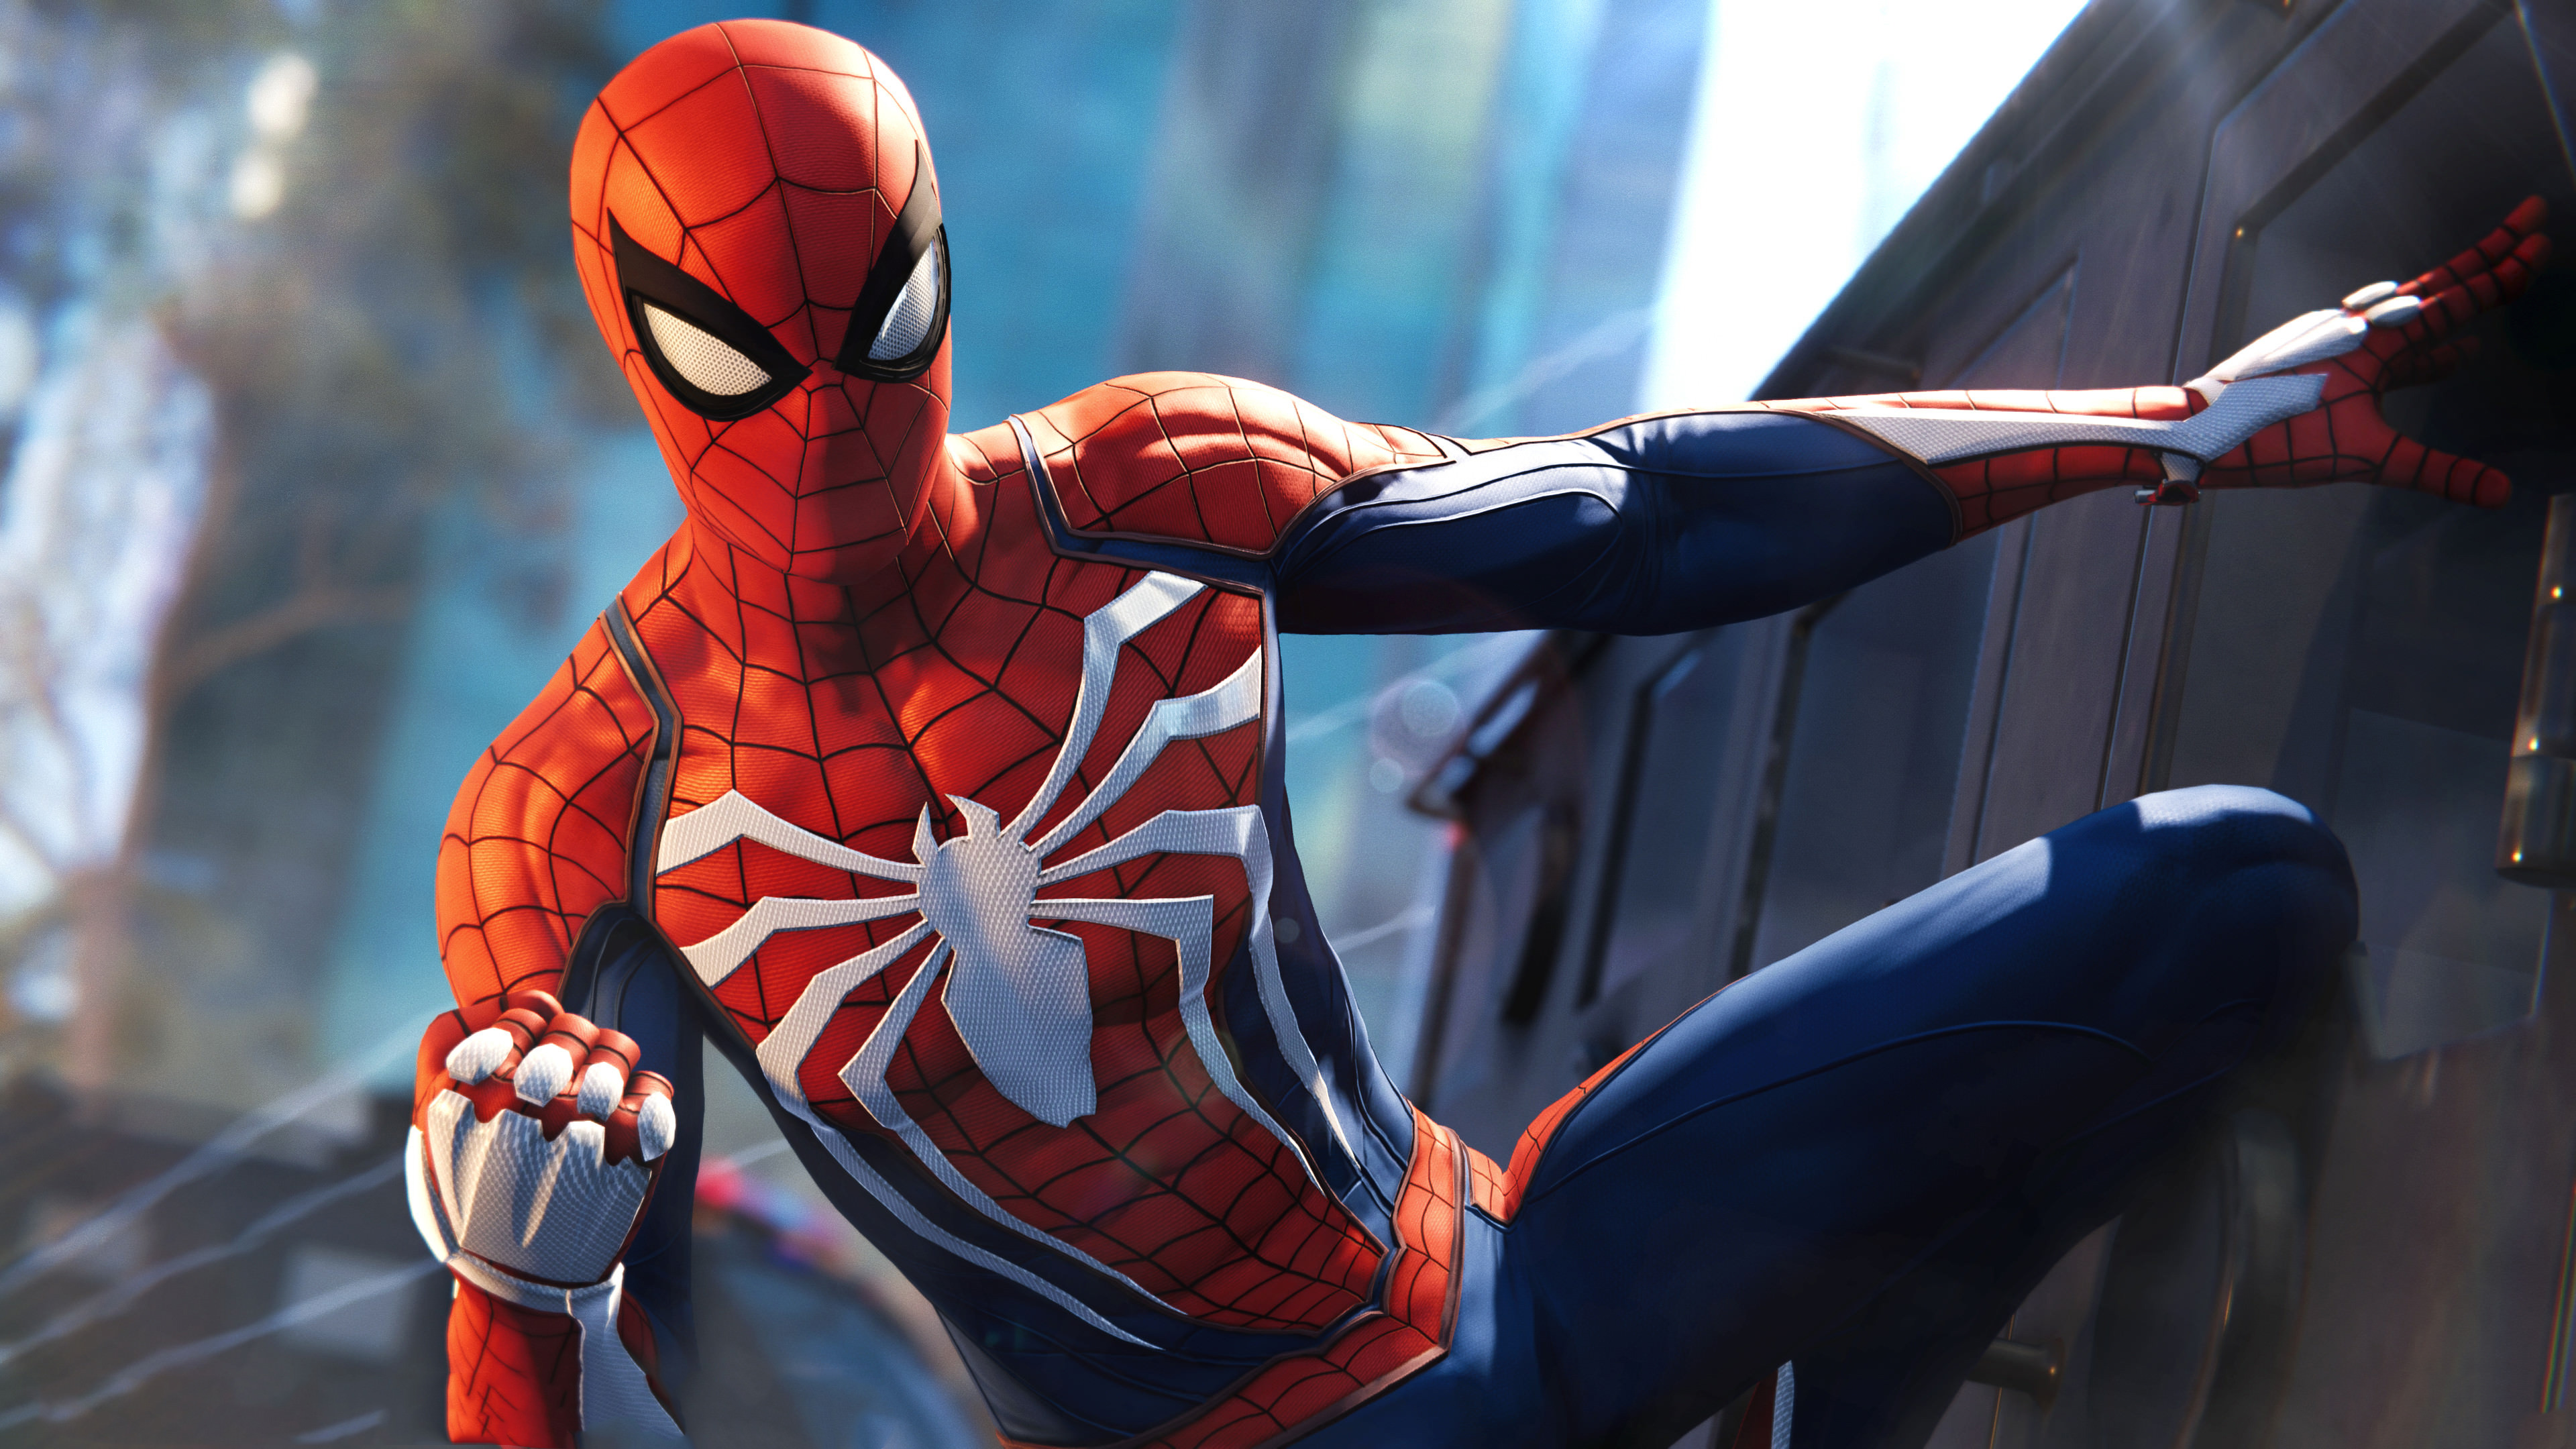 Baby Animals Hd Wallpapers Spider Man Ps4 4k Wallpapers Wallpapers Hd